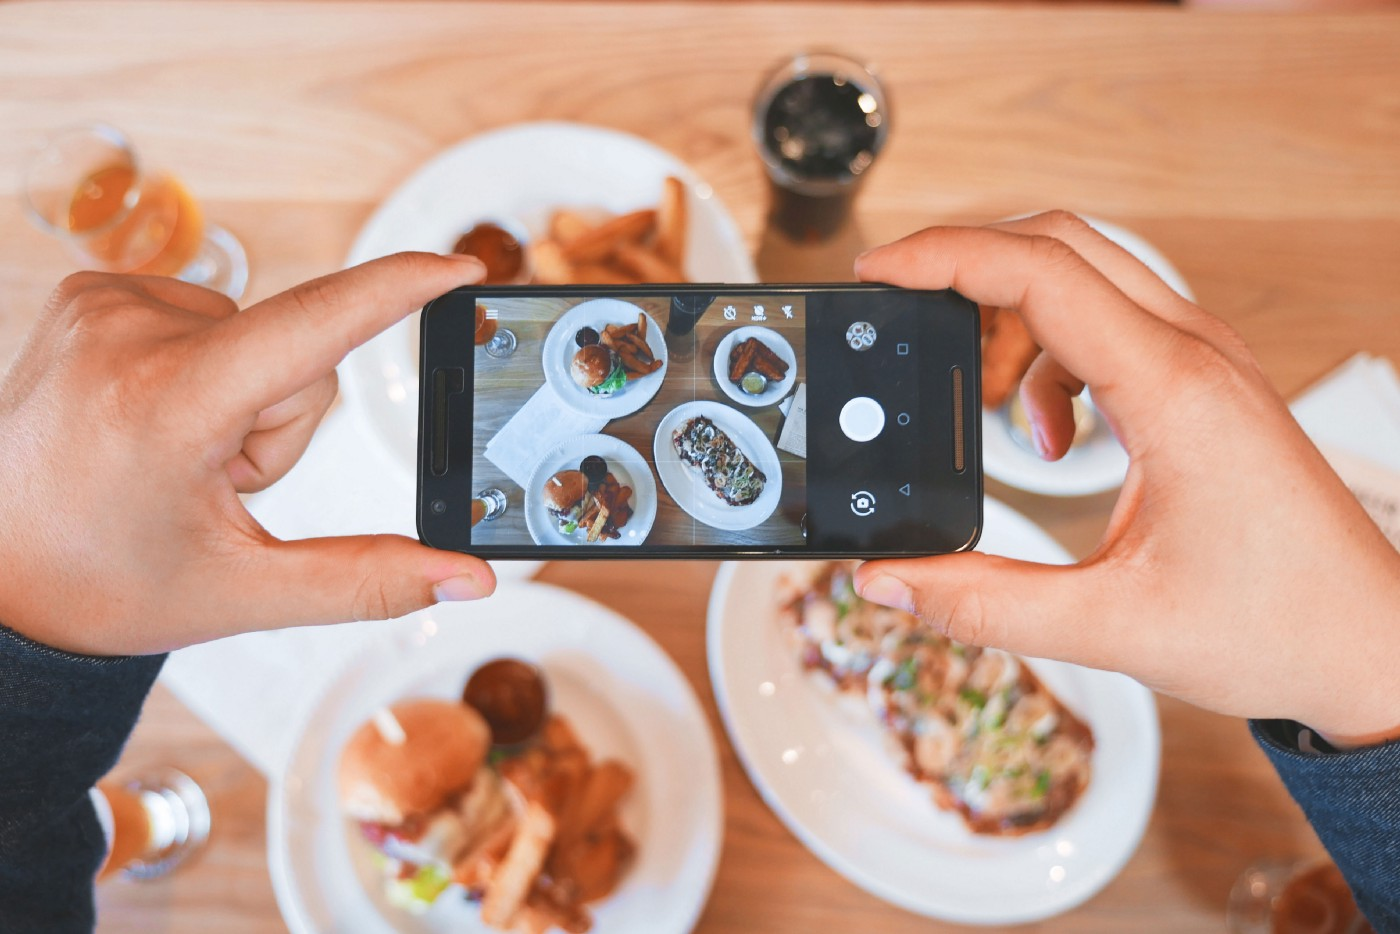 Instagram marketing. How to avoid IG mistakes